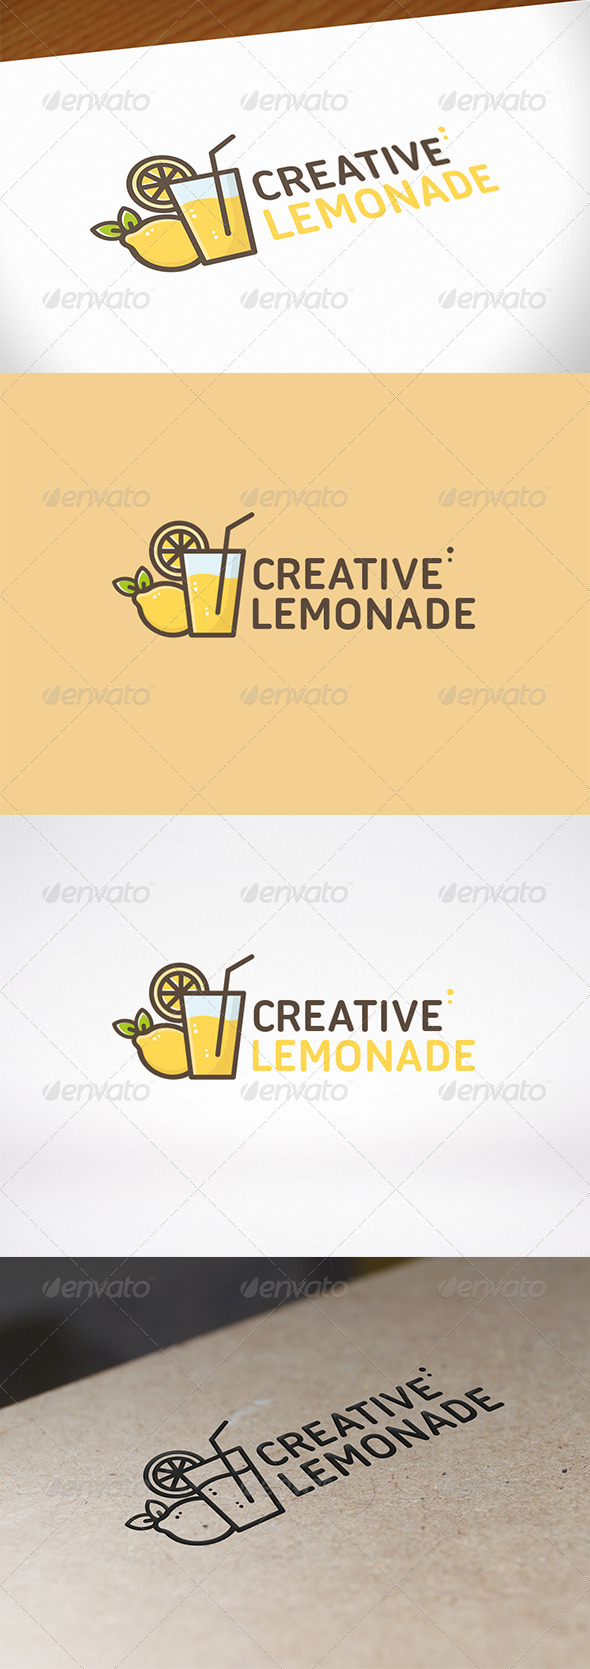 Lemon Juice Logo Template